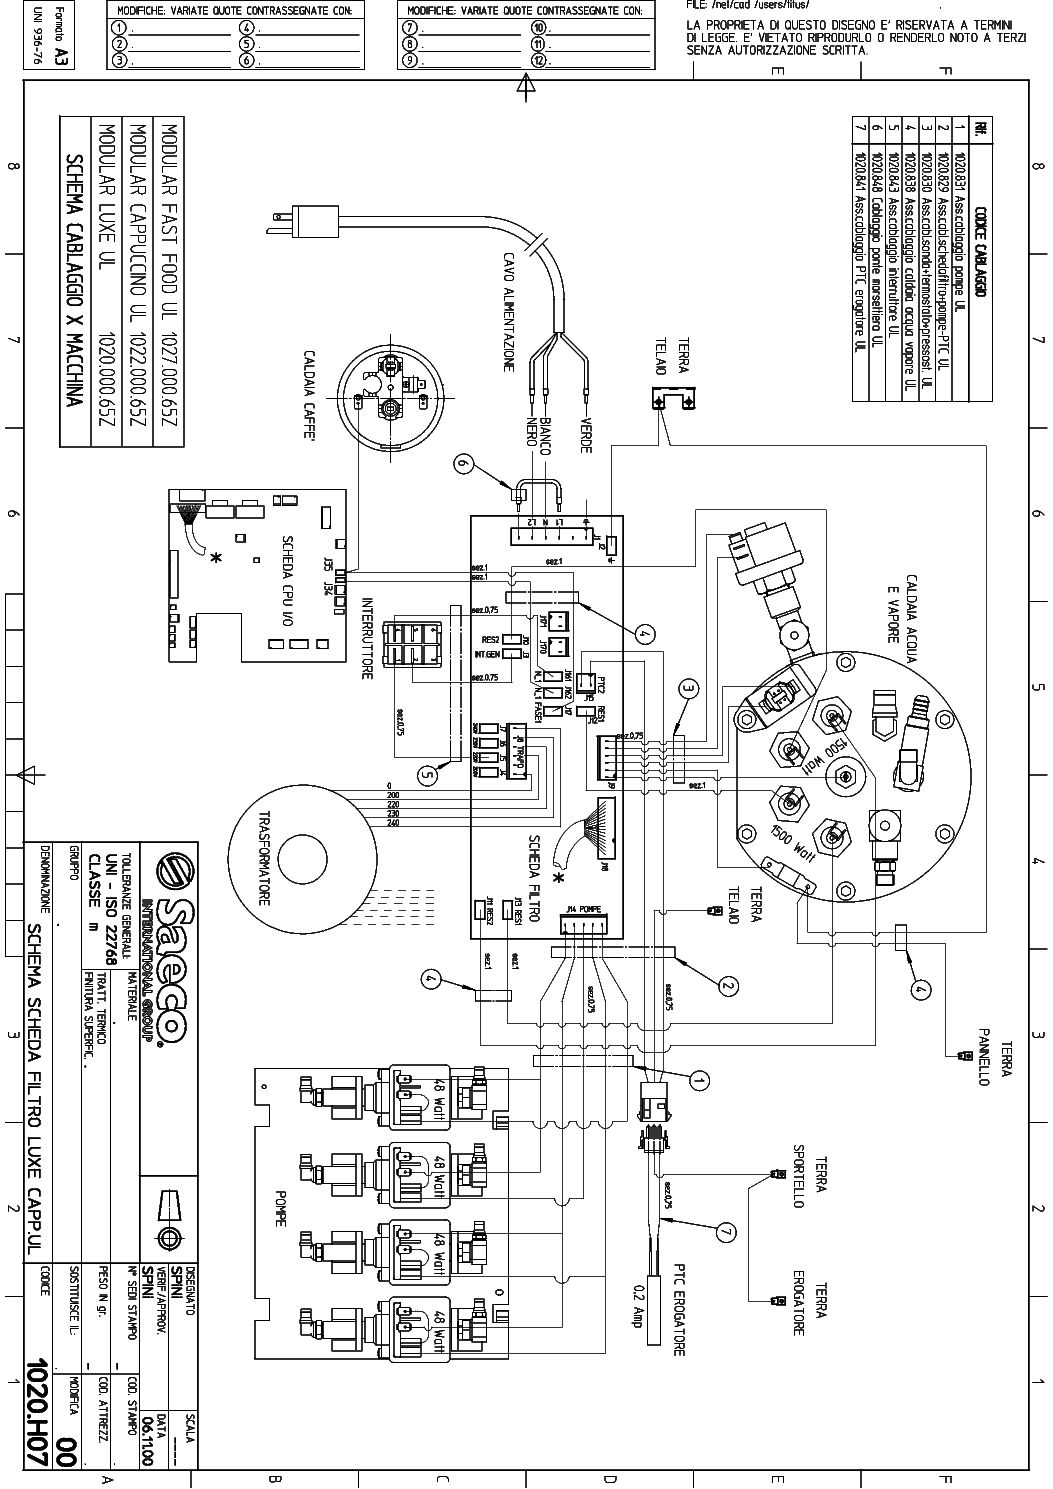 SAECO MODULAR WIRING CAPPUCCINO Service Manual download